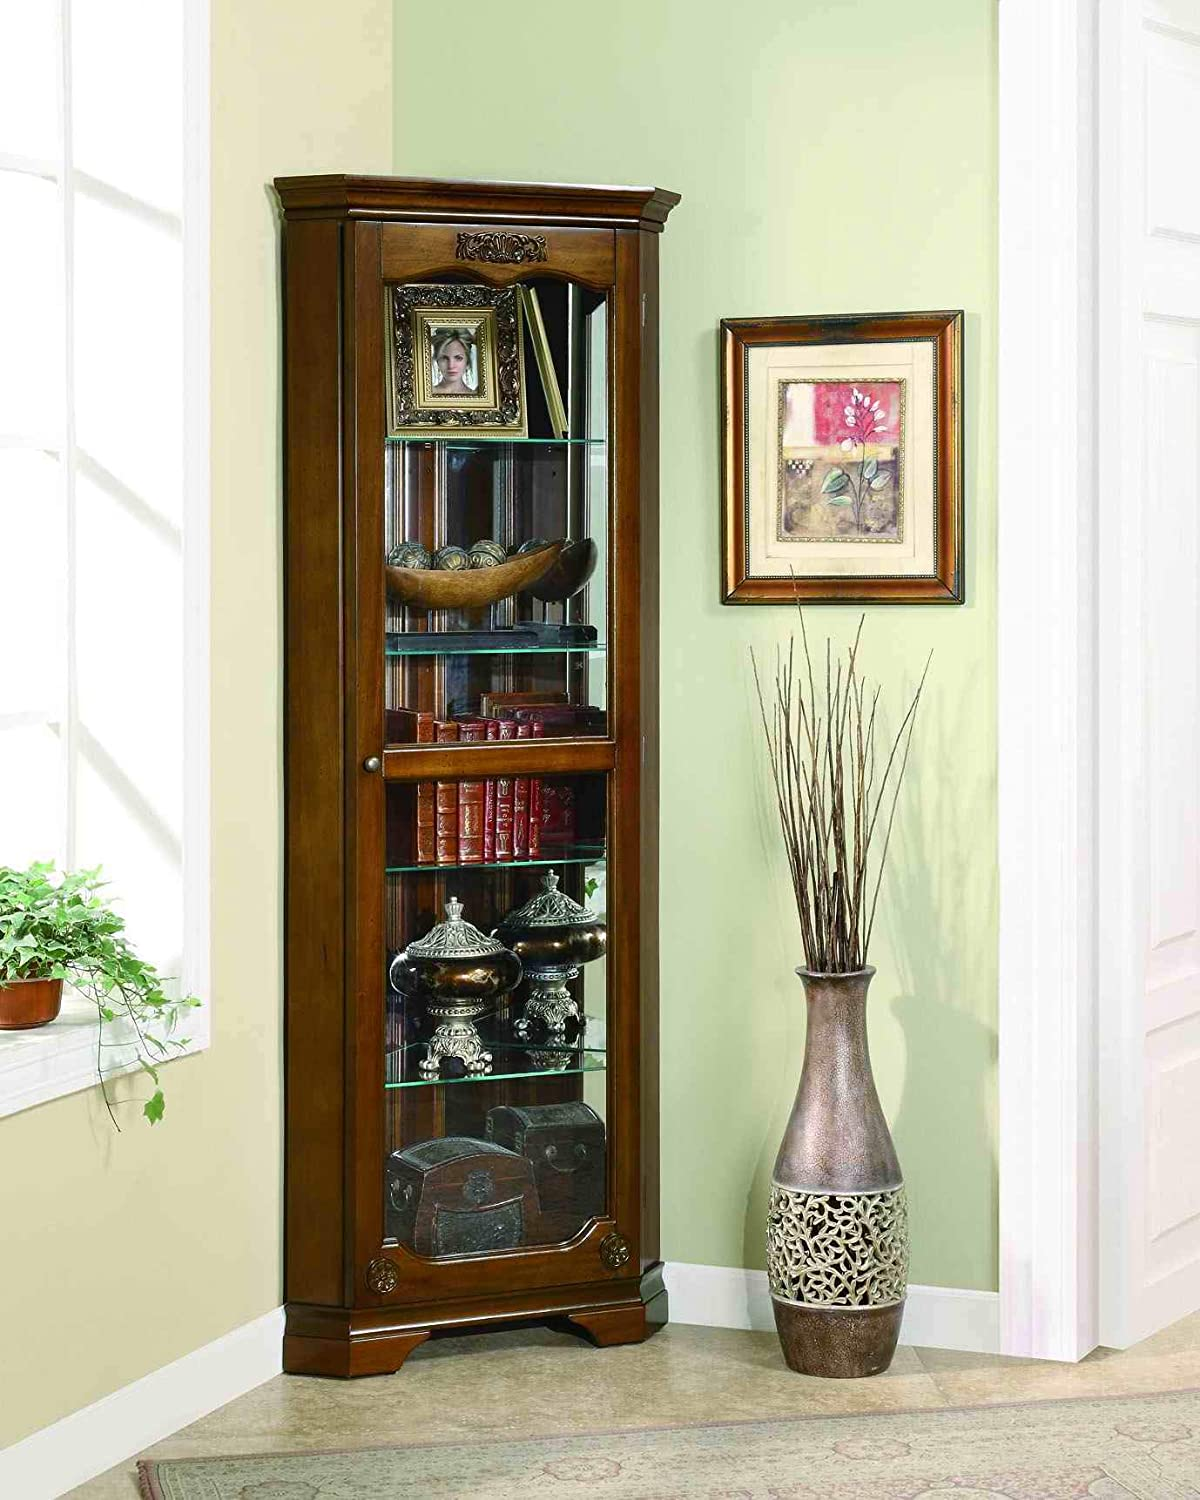 5-Shelf Glass Door Curio Cabinet - Walnut Brown cc18007